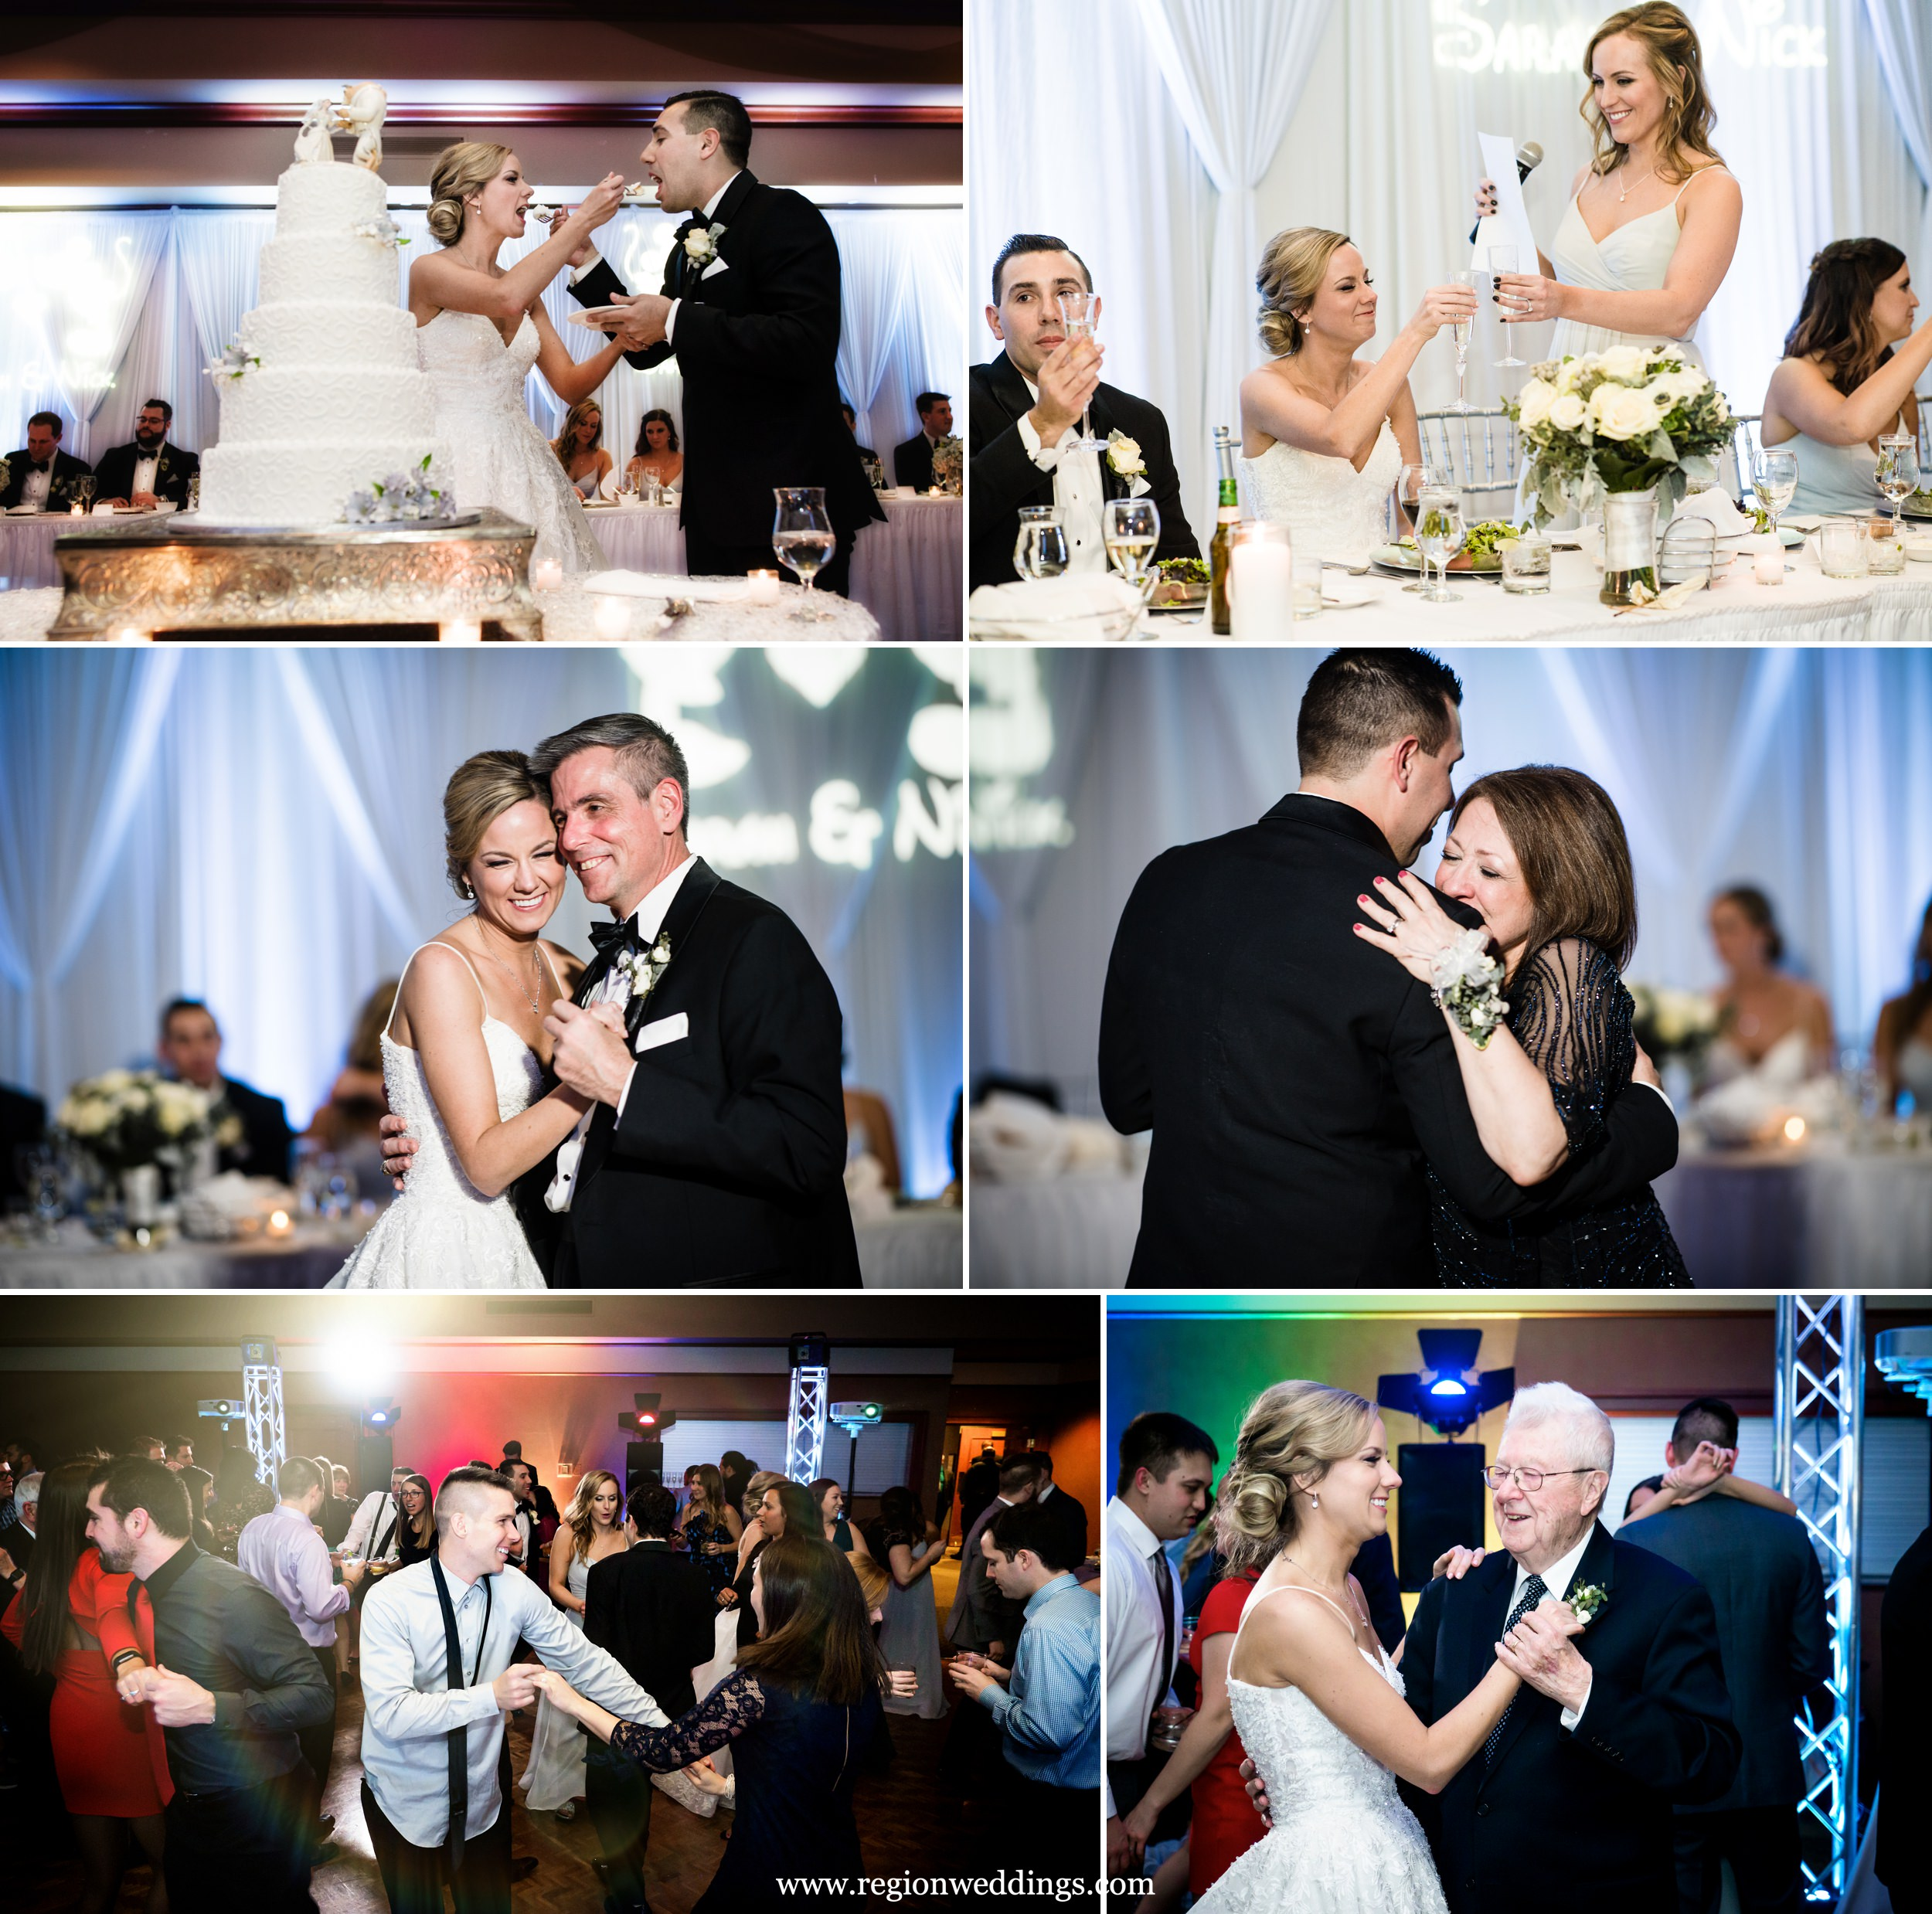 Winter wedding reception at Sand Creek Country Club in Chesterton, Indiana.